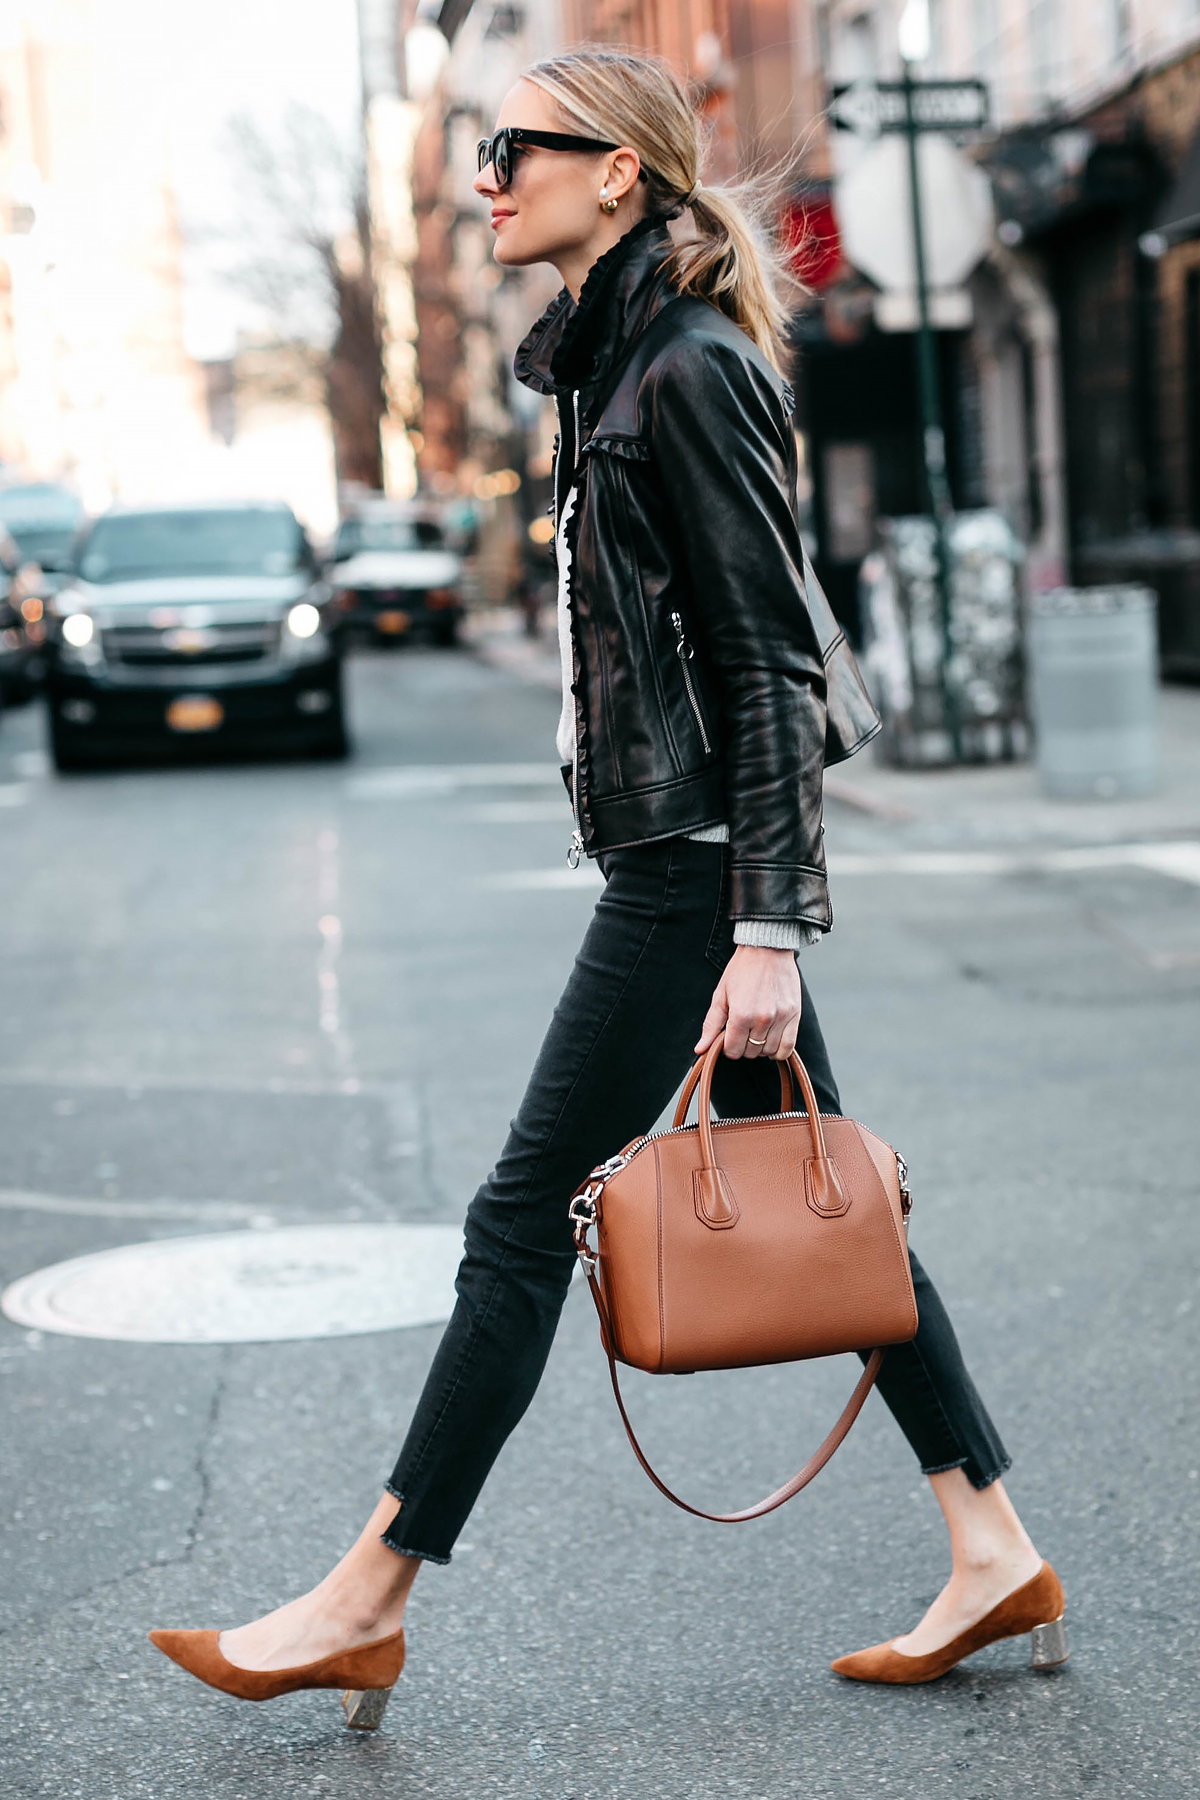 Blonde Woman Wearing Ann Taylor Black Leather Jacket Black Skinny Jeans Tan Pumps Fashion Jackson Dallas Blogger Fashion Blogger Street Style New York Fashion Week